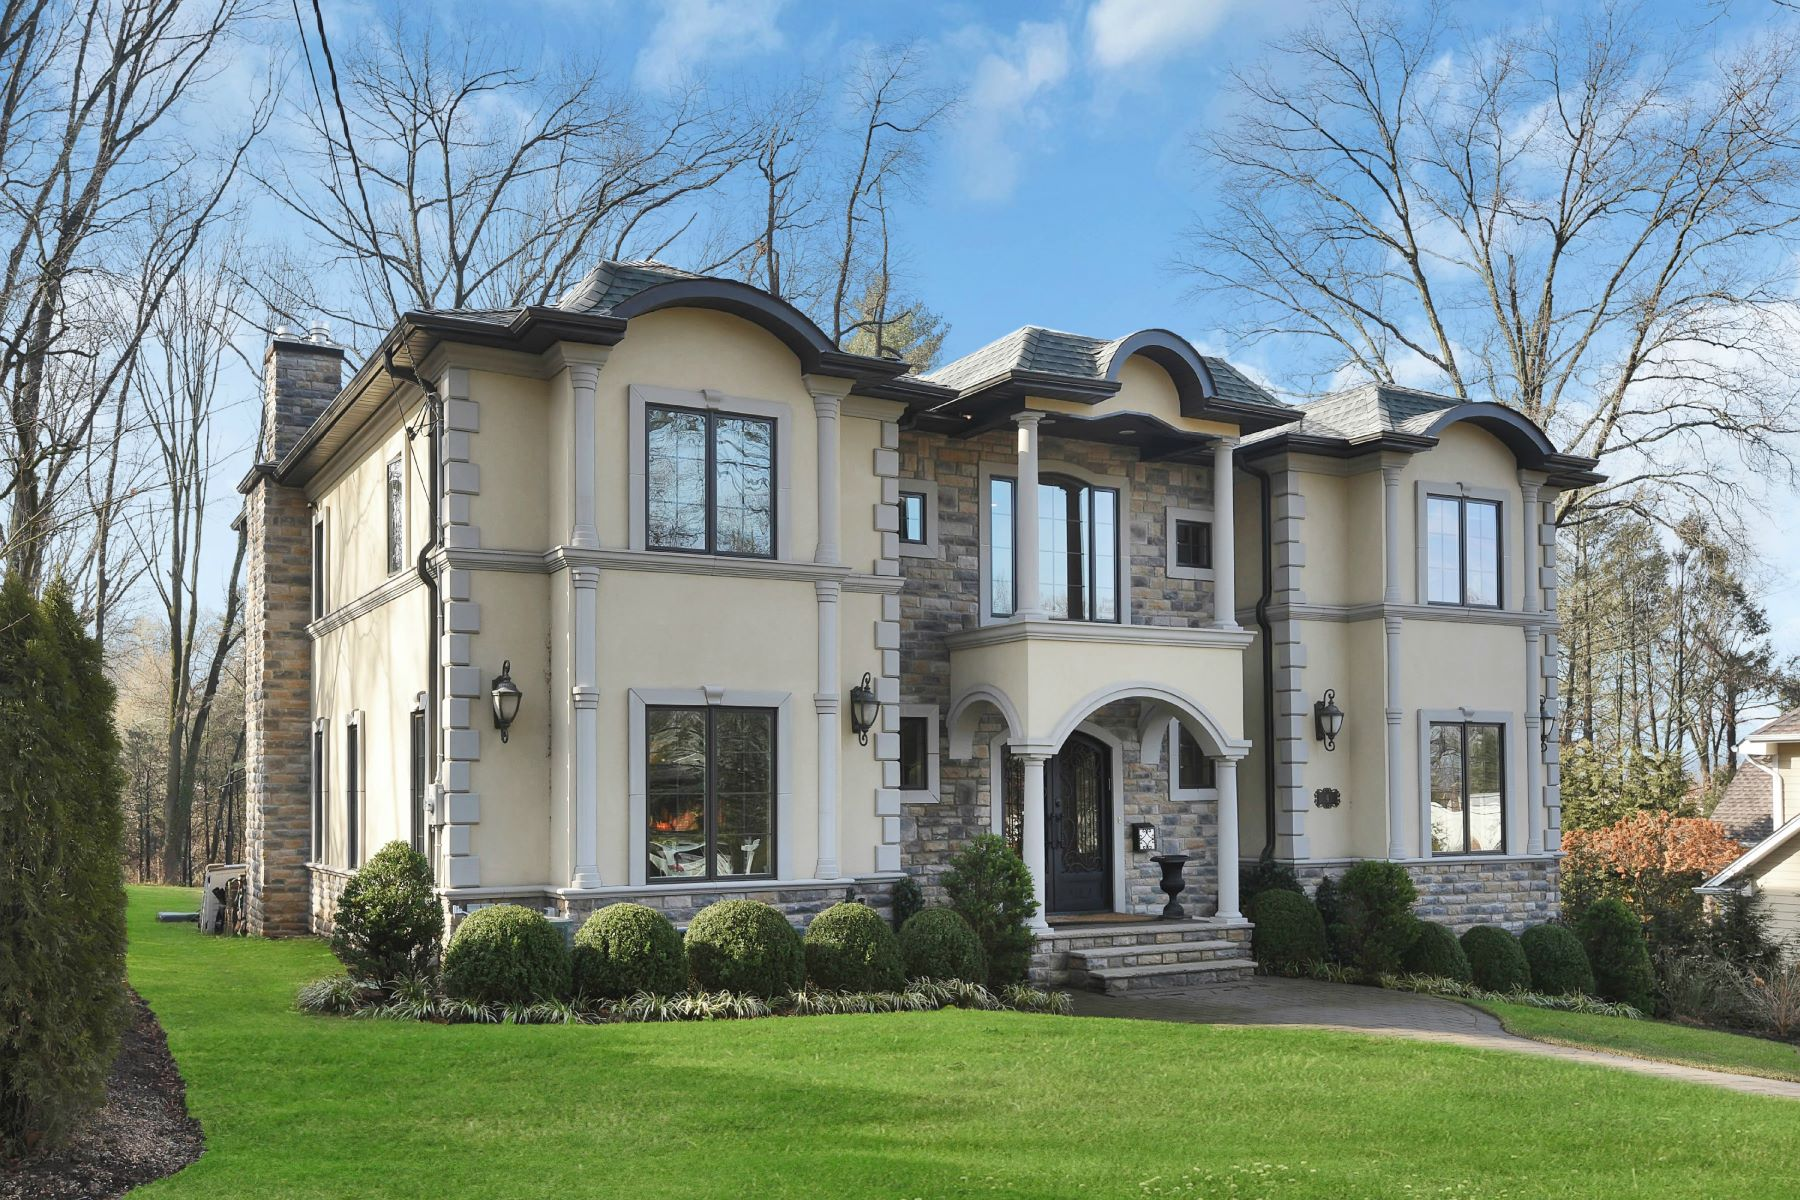 Single Family Home for Sale at Gorgeous Tenafly Colonial 4 N Summit Street Tenafly, New Jersey 07670 United States